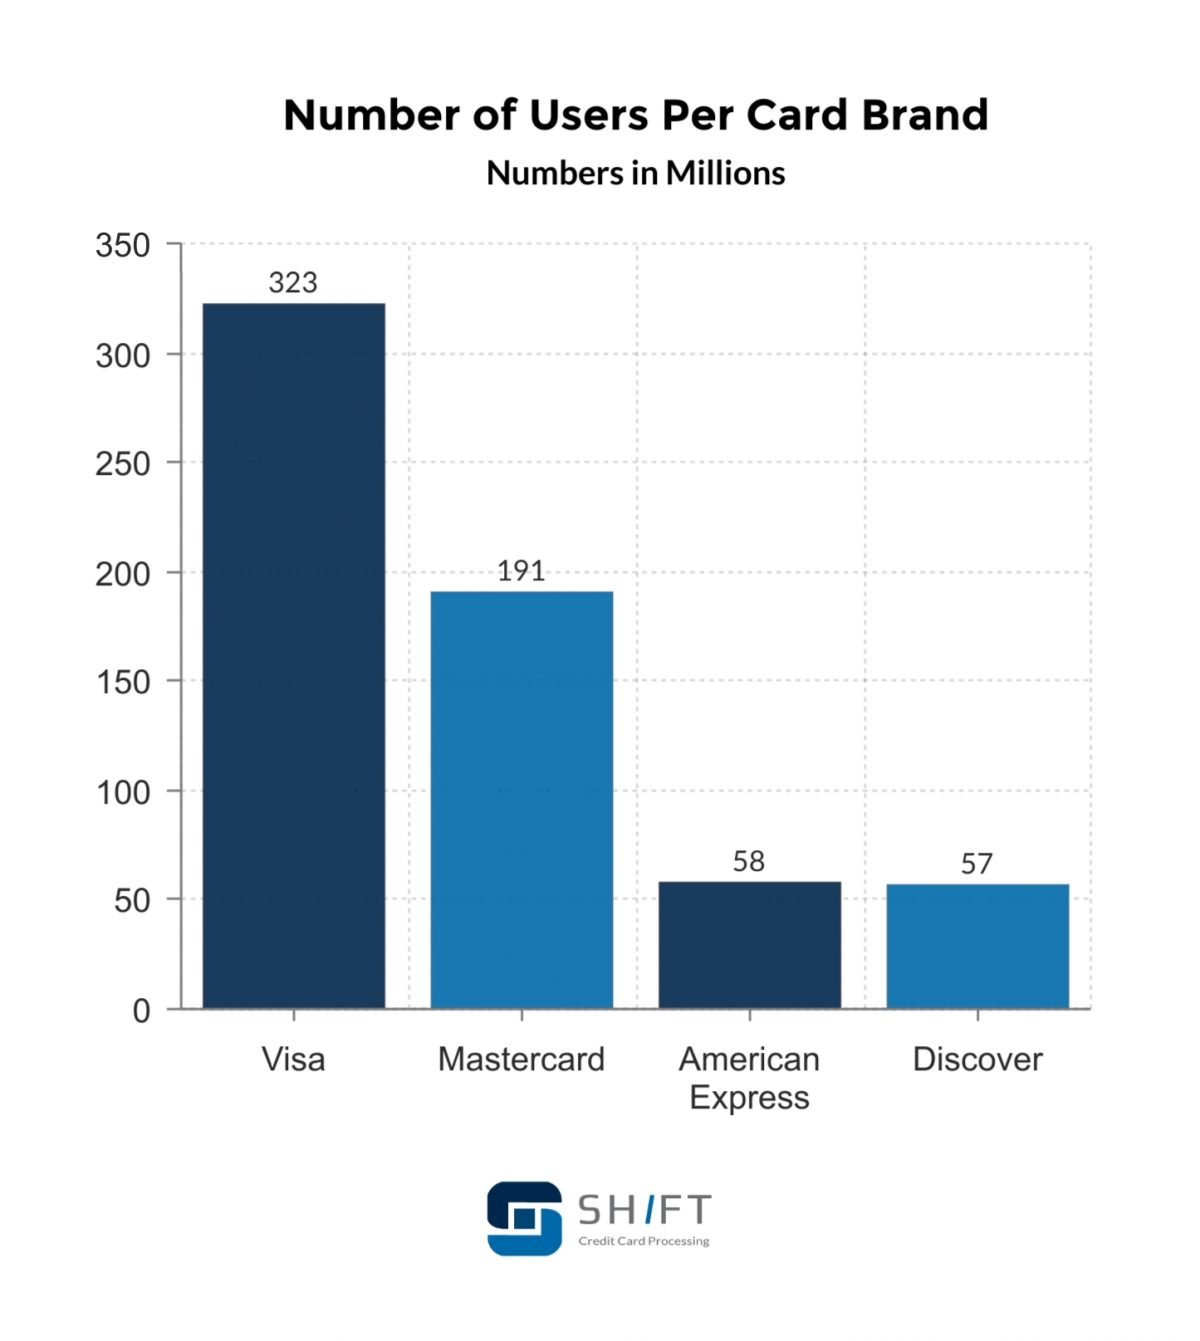 number of users per card brand